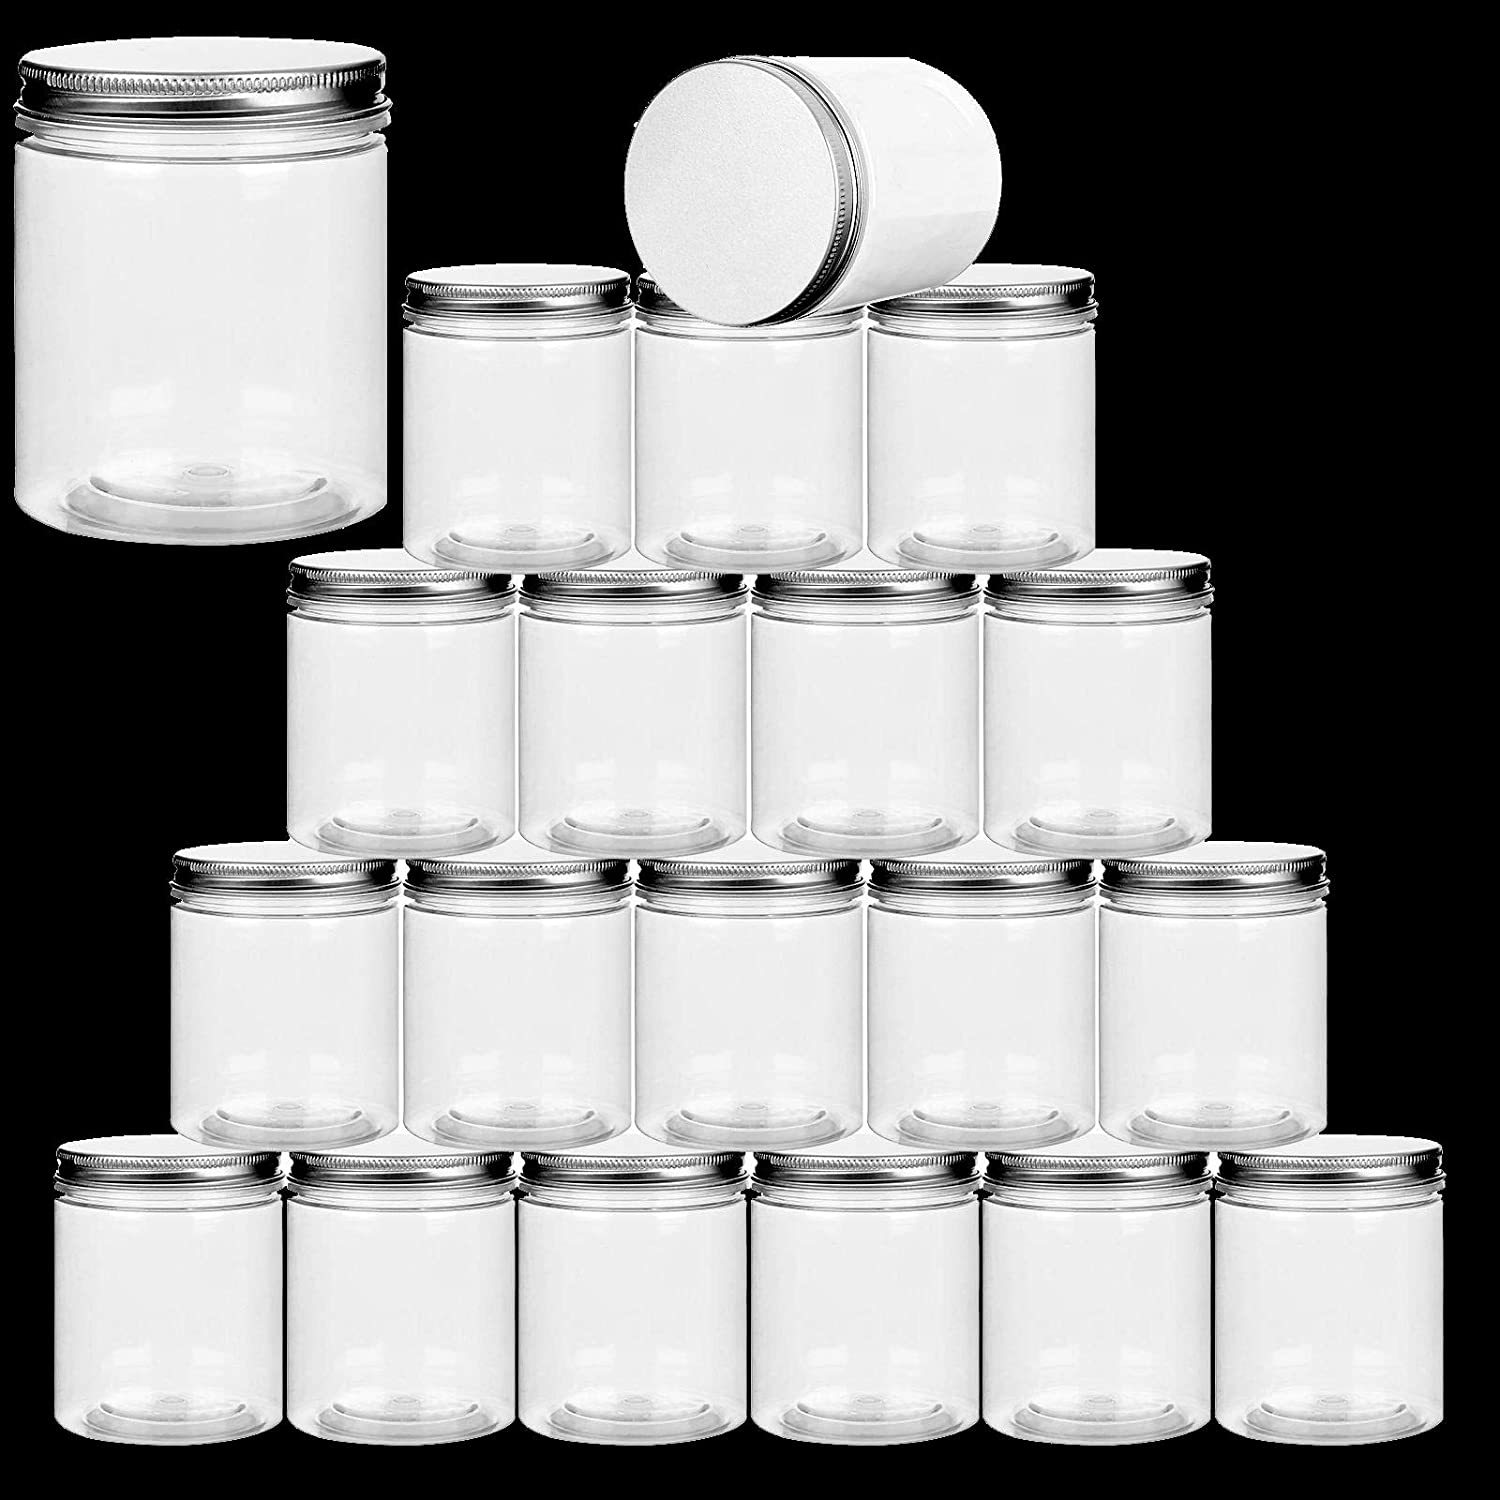 20 Pack 7 Ounce Clear Wide Size Plastic Jars Refillable Round Storage Containers Pantry Canisters with Lids